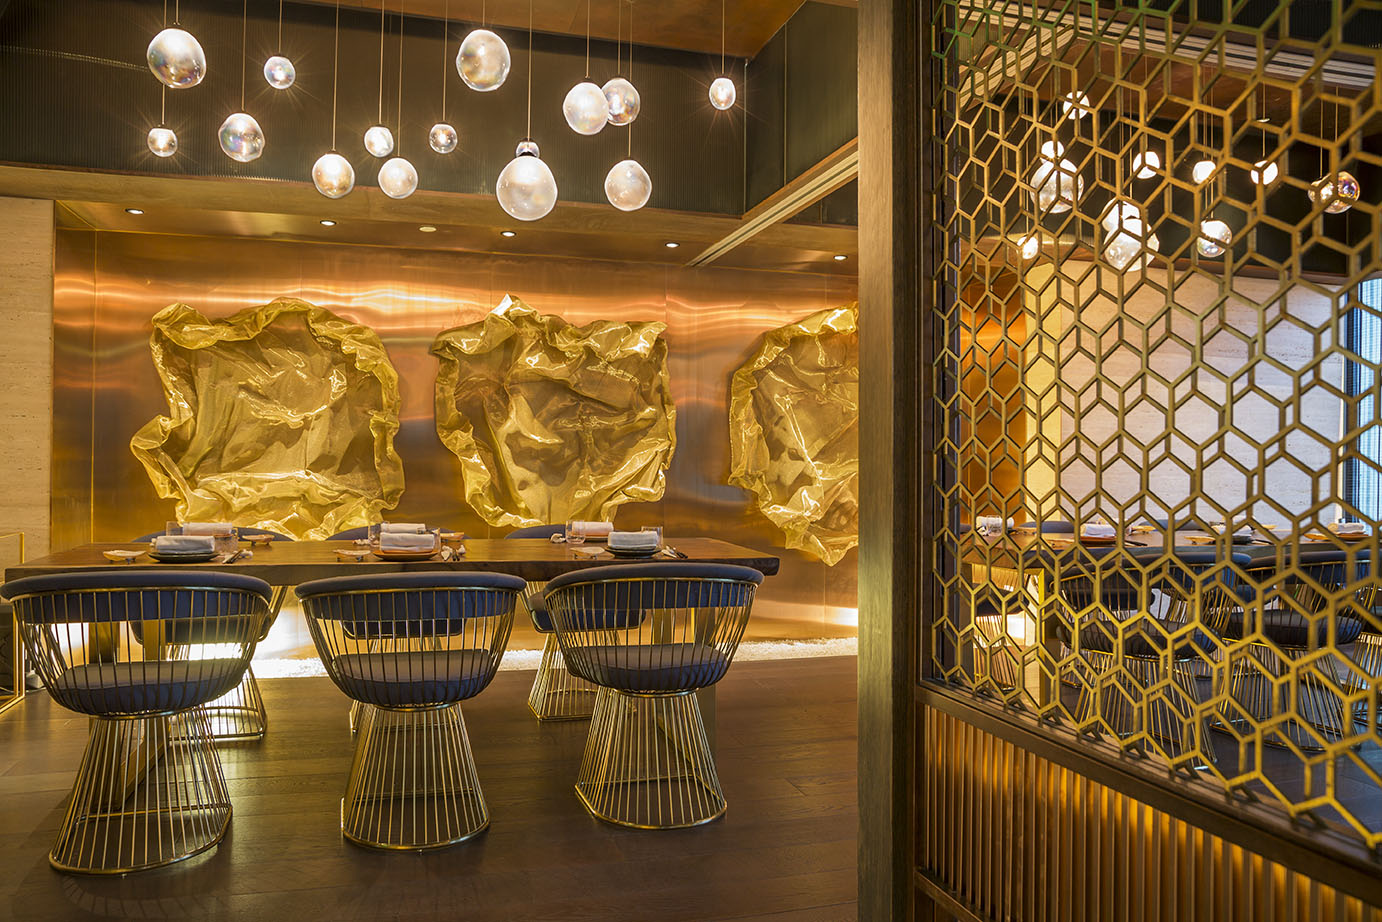 Restaurant & Bar Design Awards 2018 Shortlisted – UMI, Shanghai